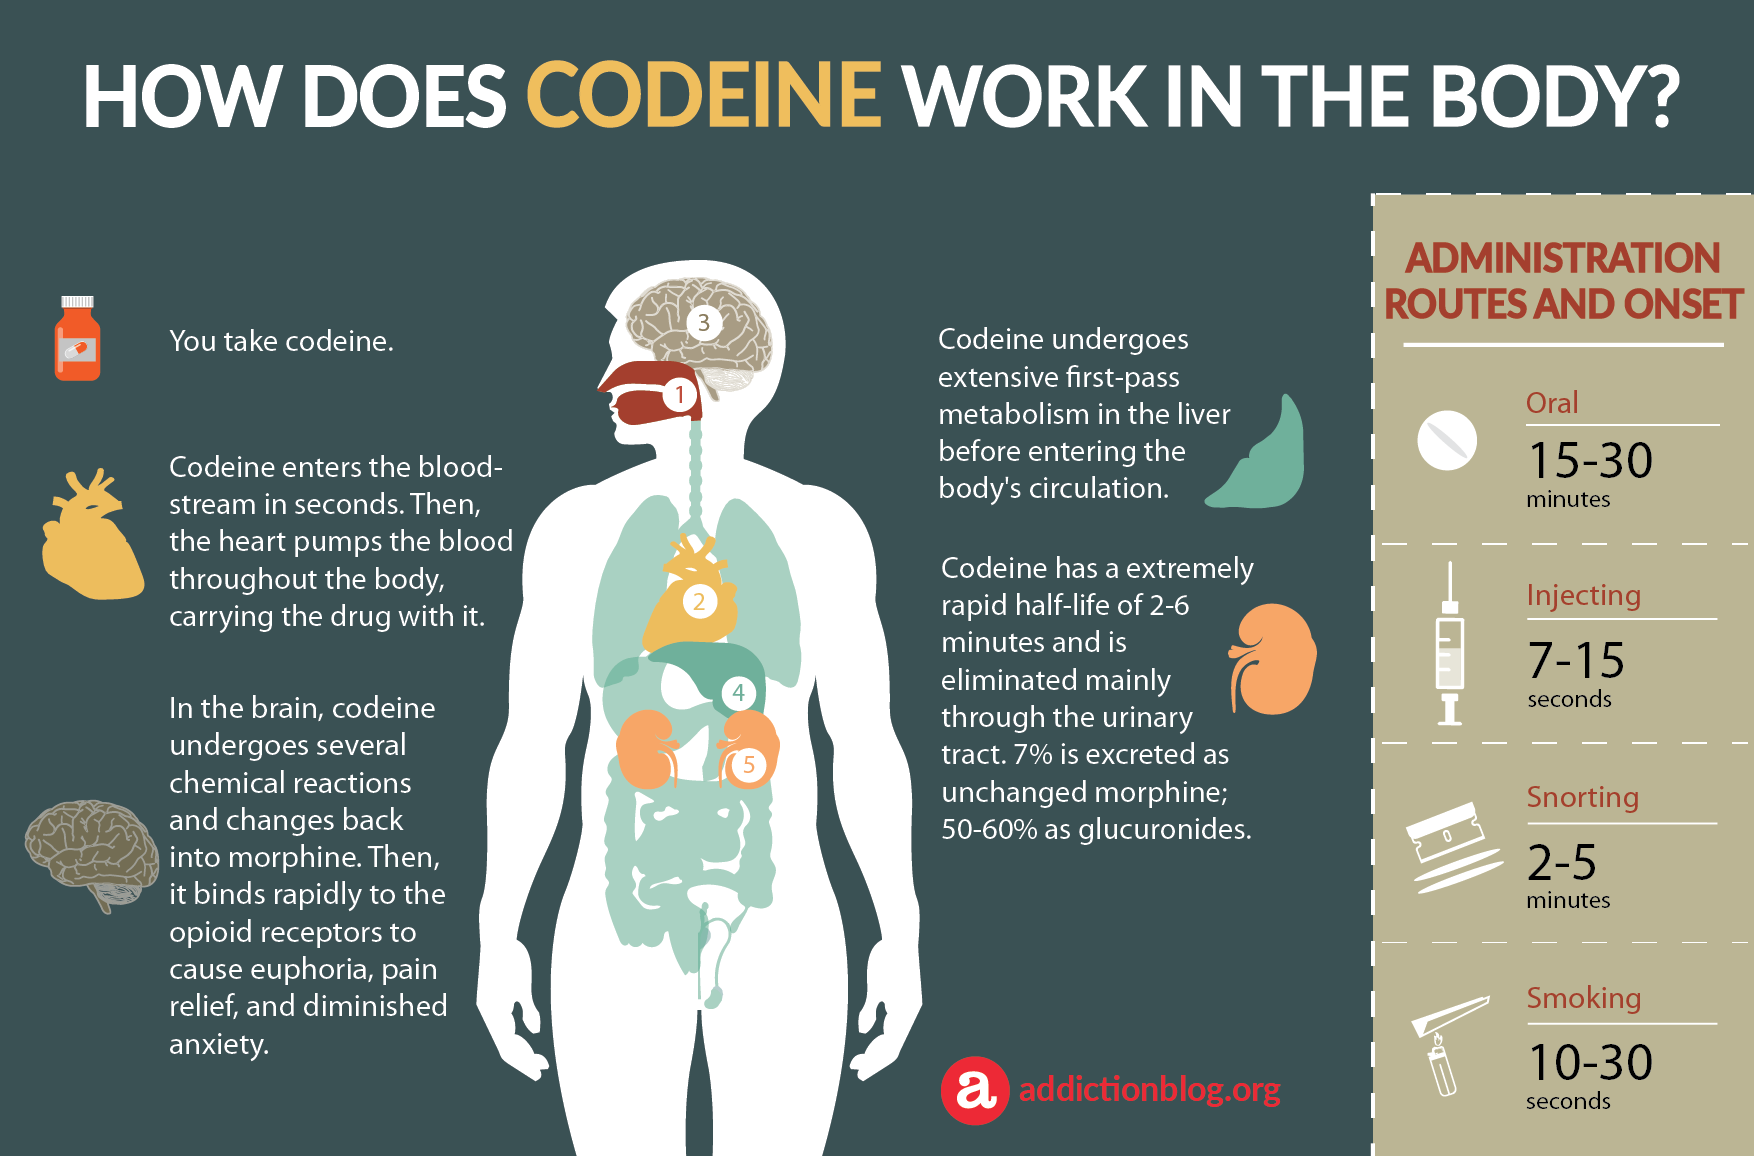 Codeine Metabolism: How Does Codeine Work in the Body? (INFOGRAPHIC)